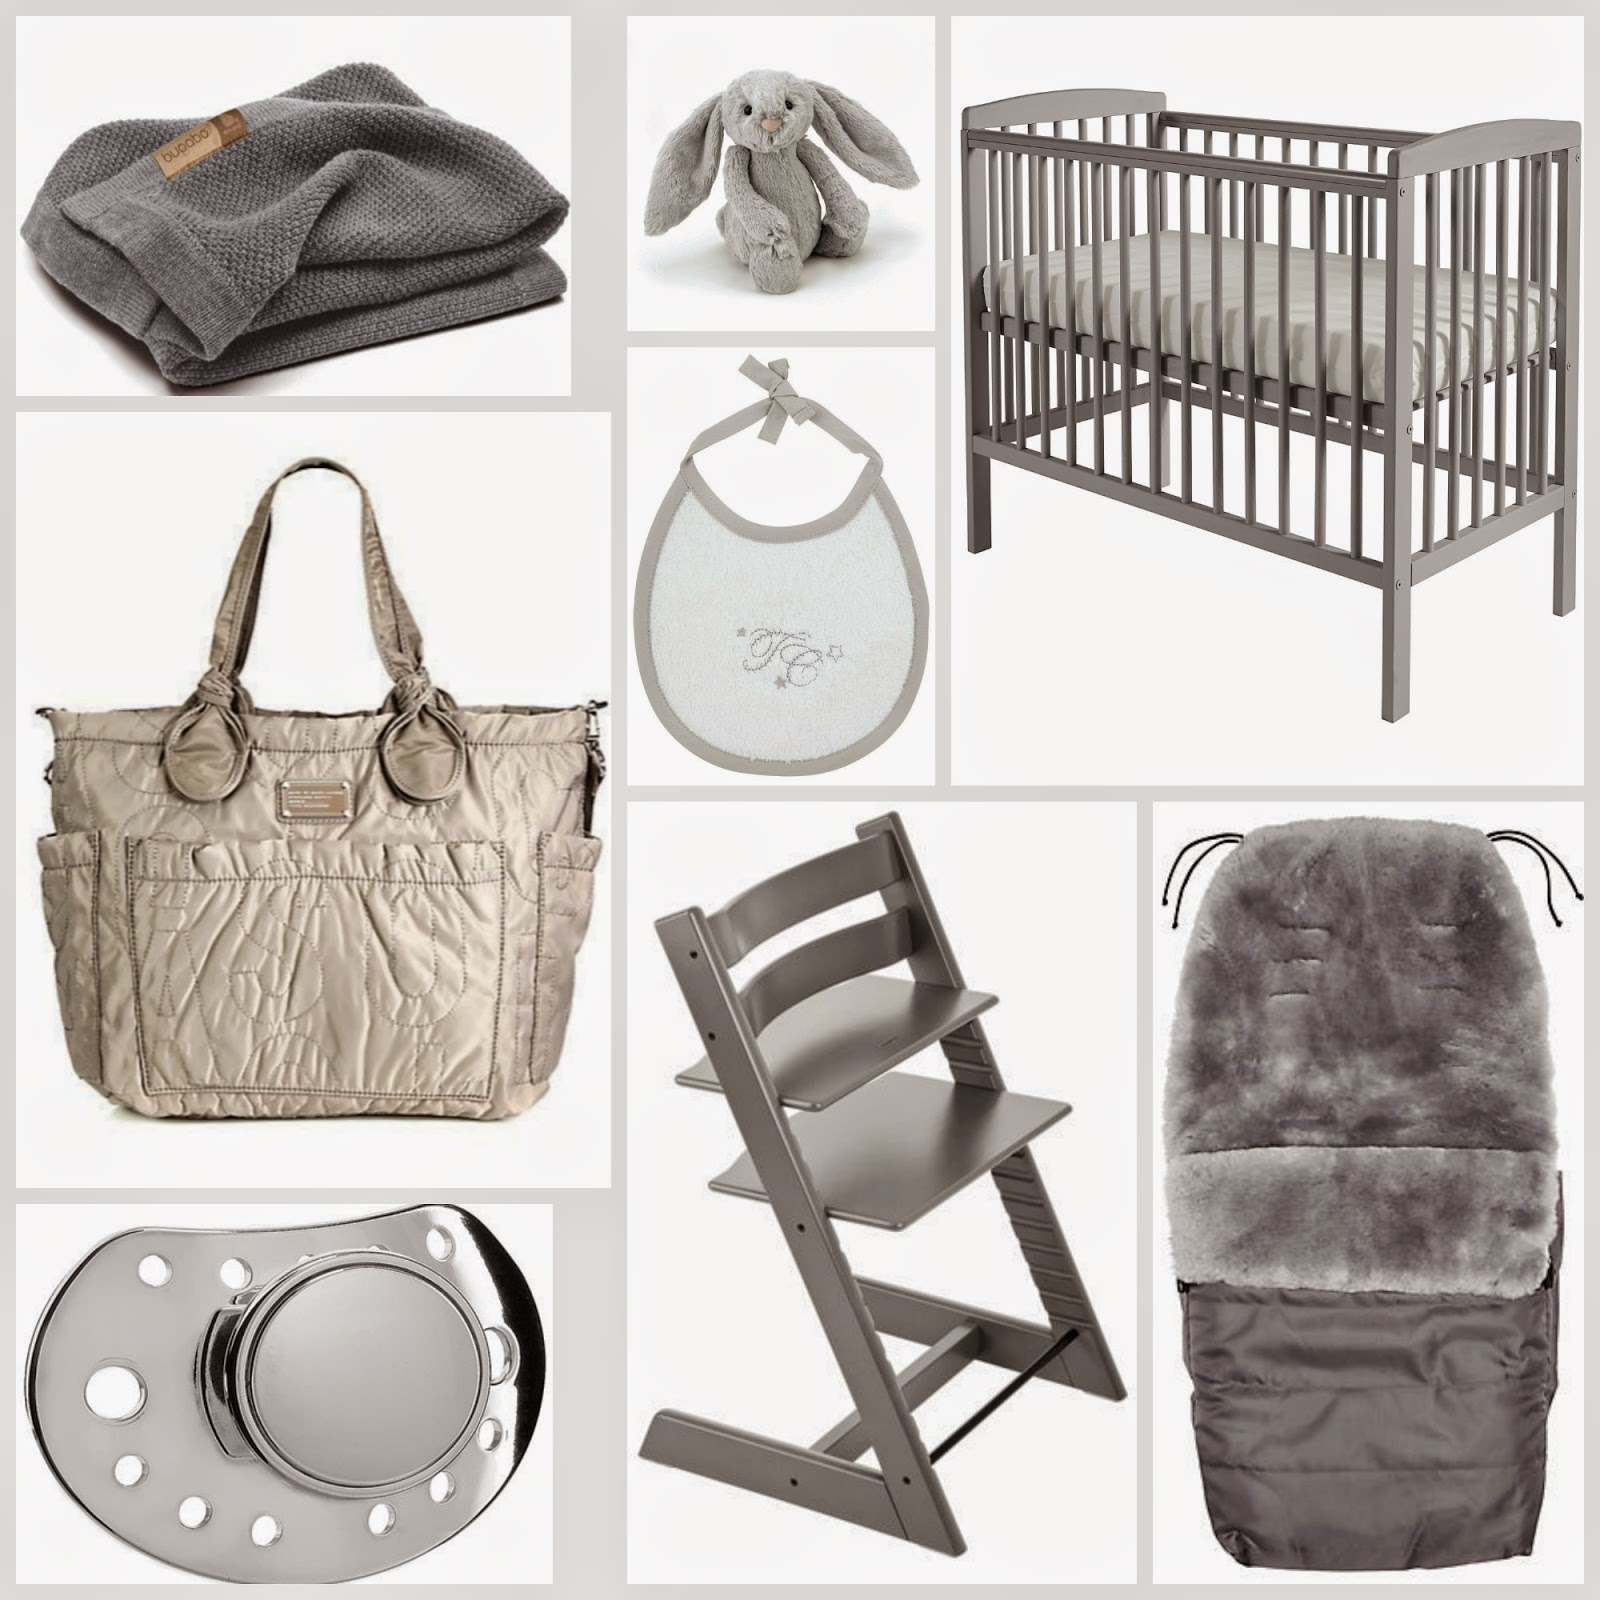 mamasVIB: V. I. BUYS: 50 stylish...Shades of Grey (warning contains: contains moderate to major needs and wants!) | 50 shades of grey | fifty shades of grey | bedroom trends | kids clothes | shades of grey | christian grey | book| Movie | grey fashion | homes | mamasVIb | style | shopping | ska taylor johnson | red magazine | 50 grey shopping items | mummy bloggers | lifestyle bloggers | fashion blogger | grey | valentines day